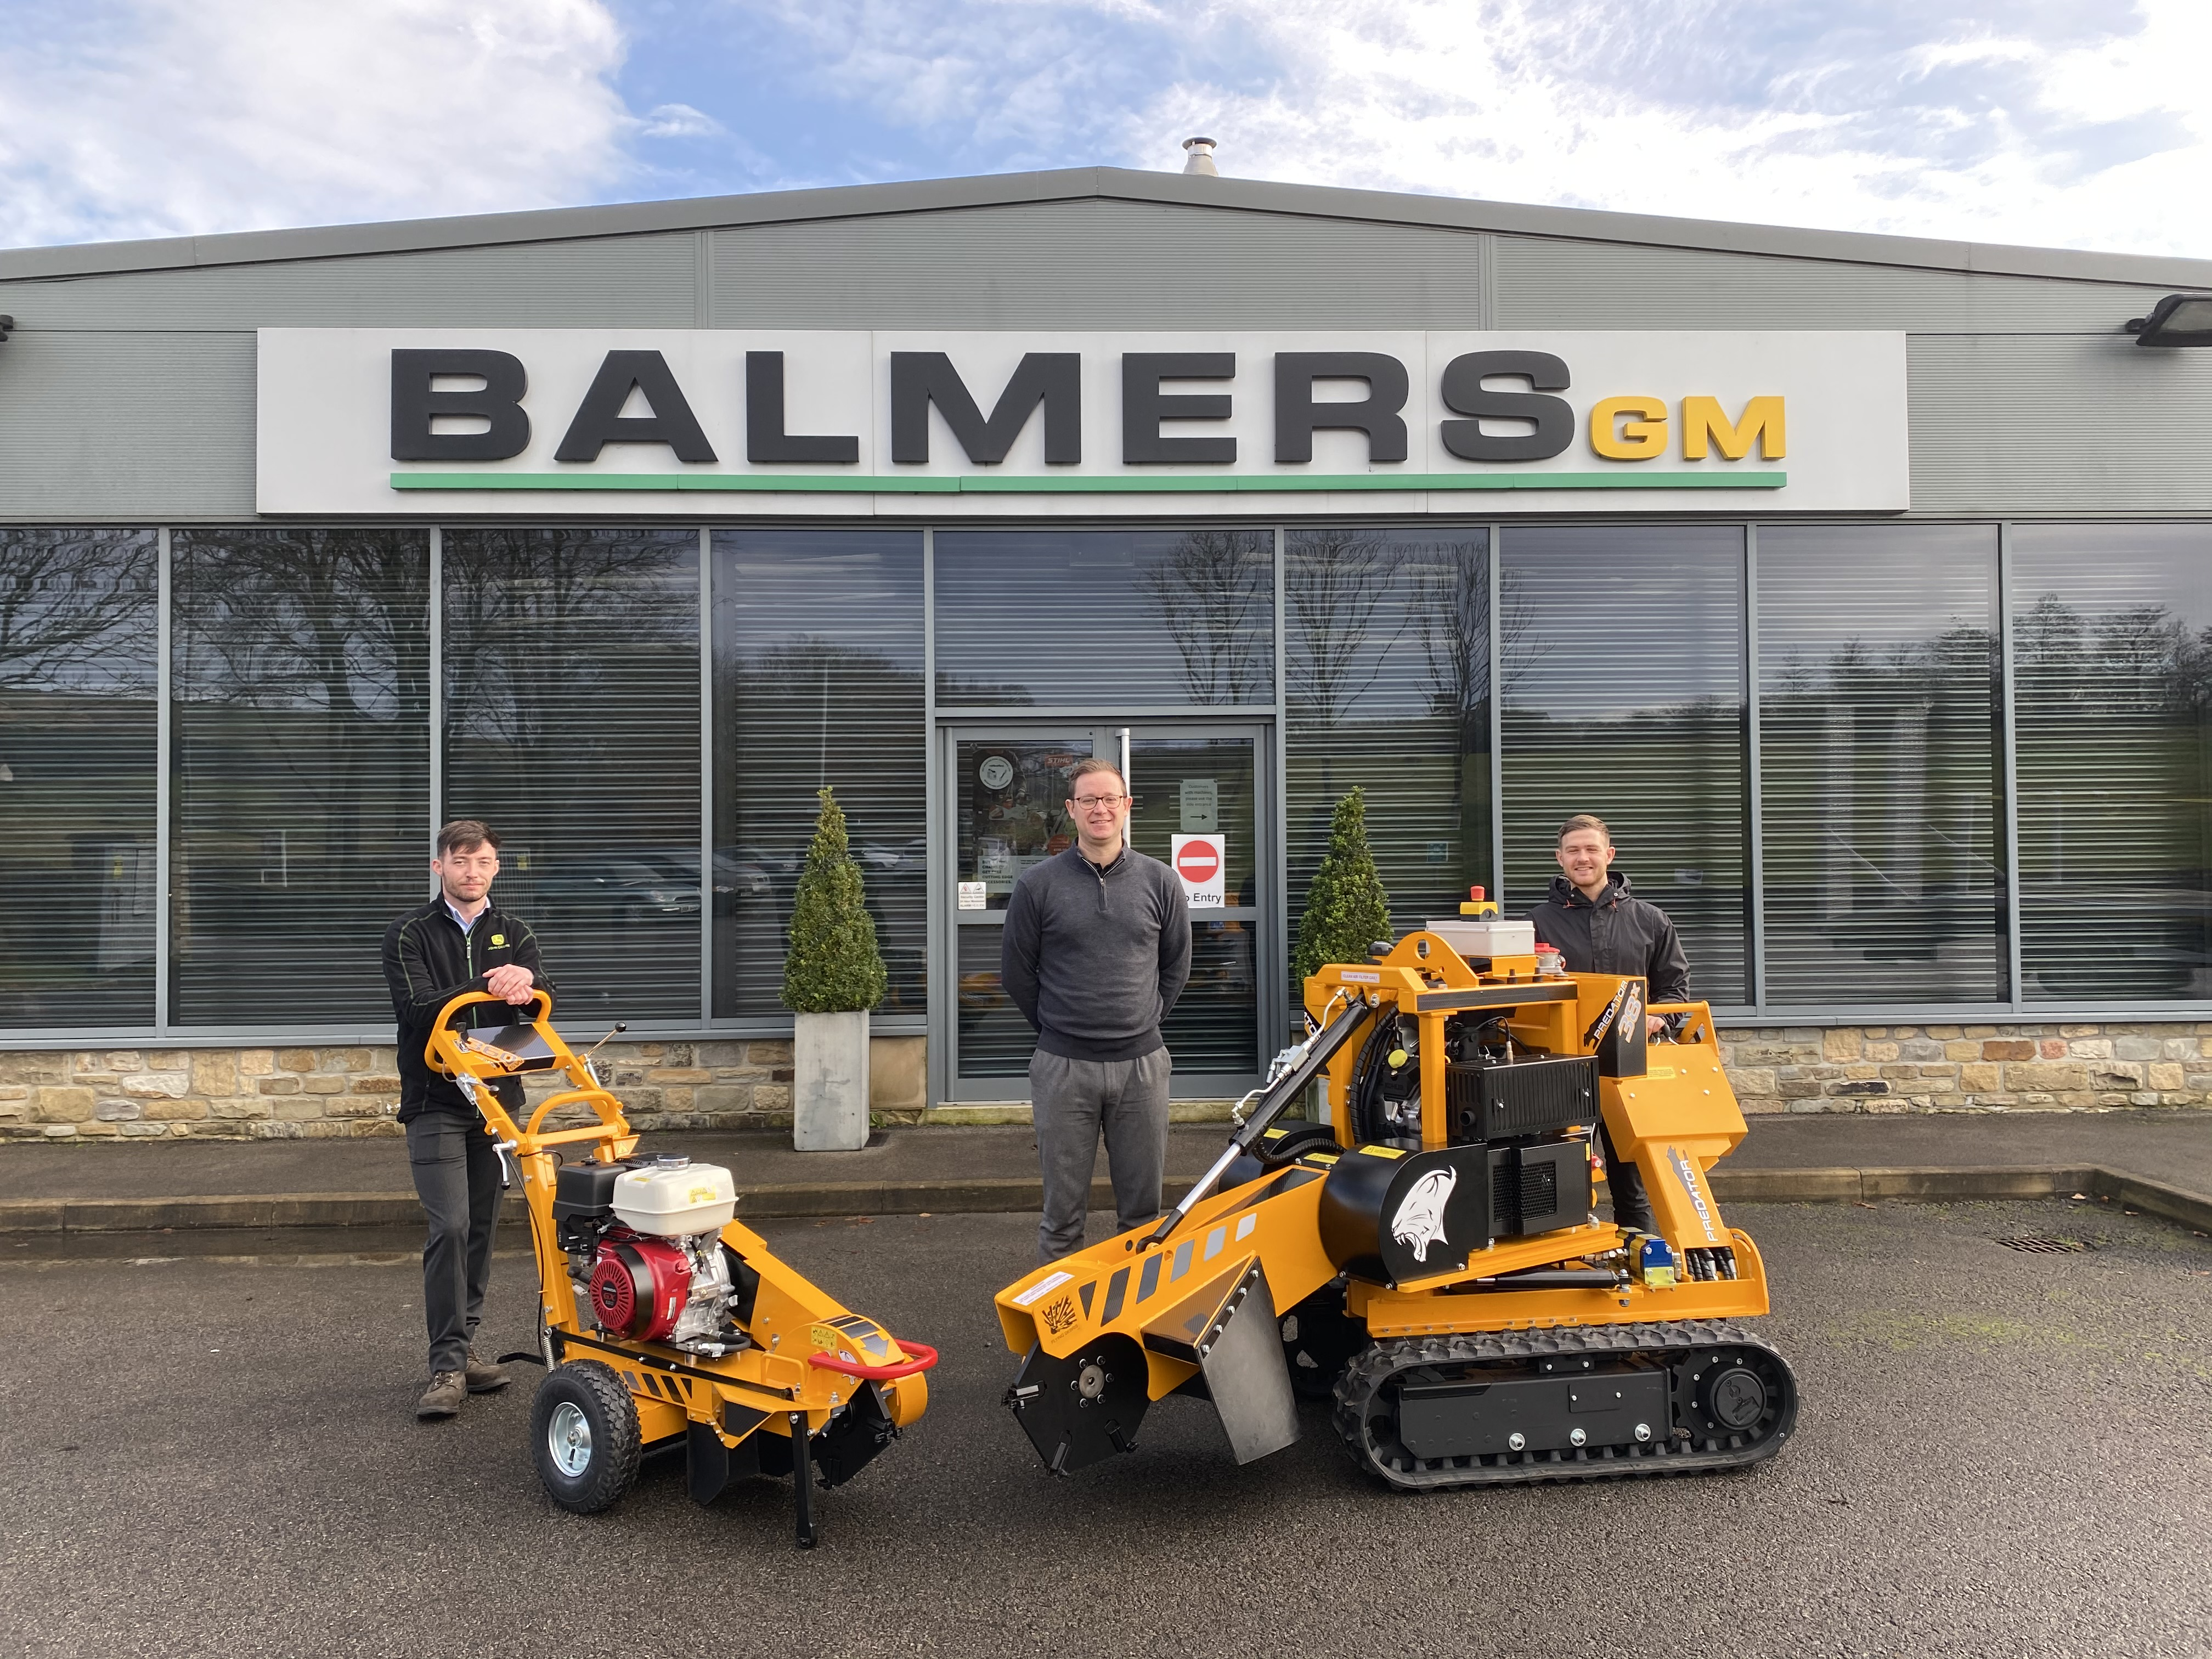 Balmers GM & Predator Stump Grinder Announce Partnership